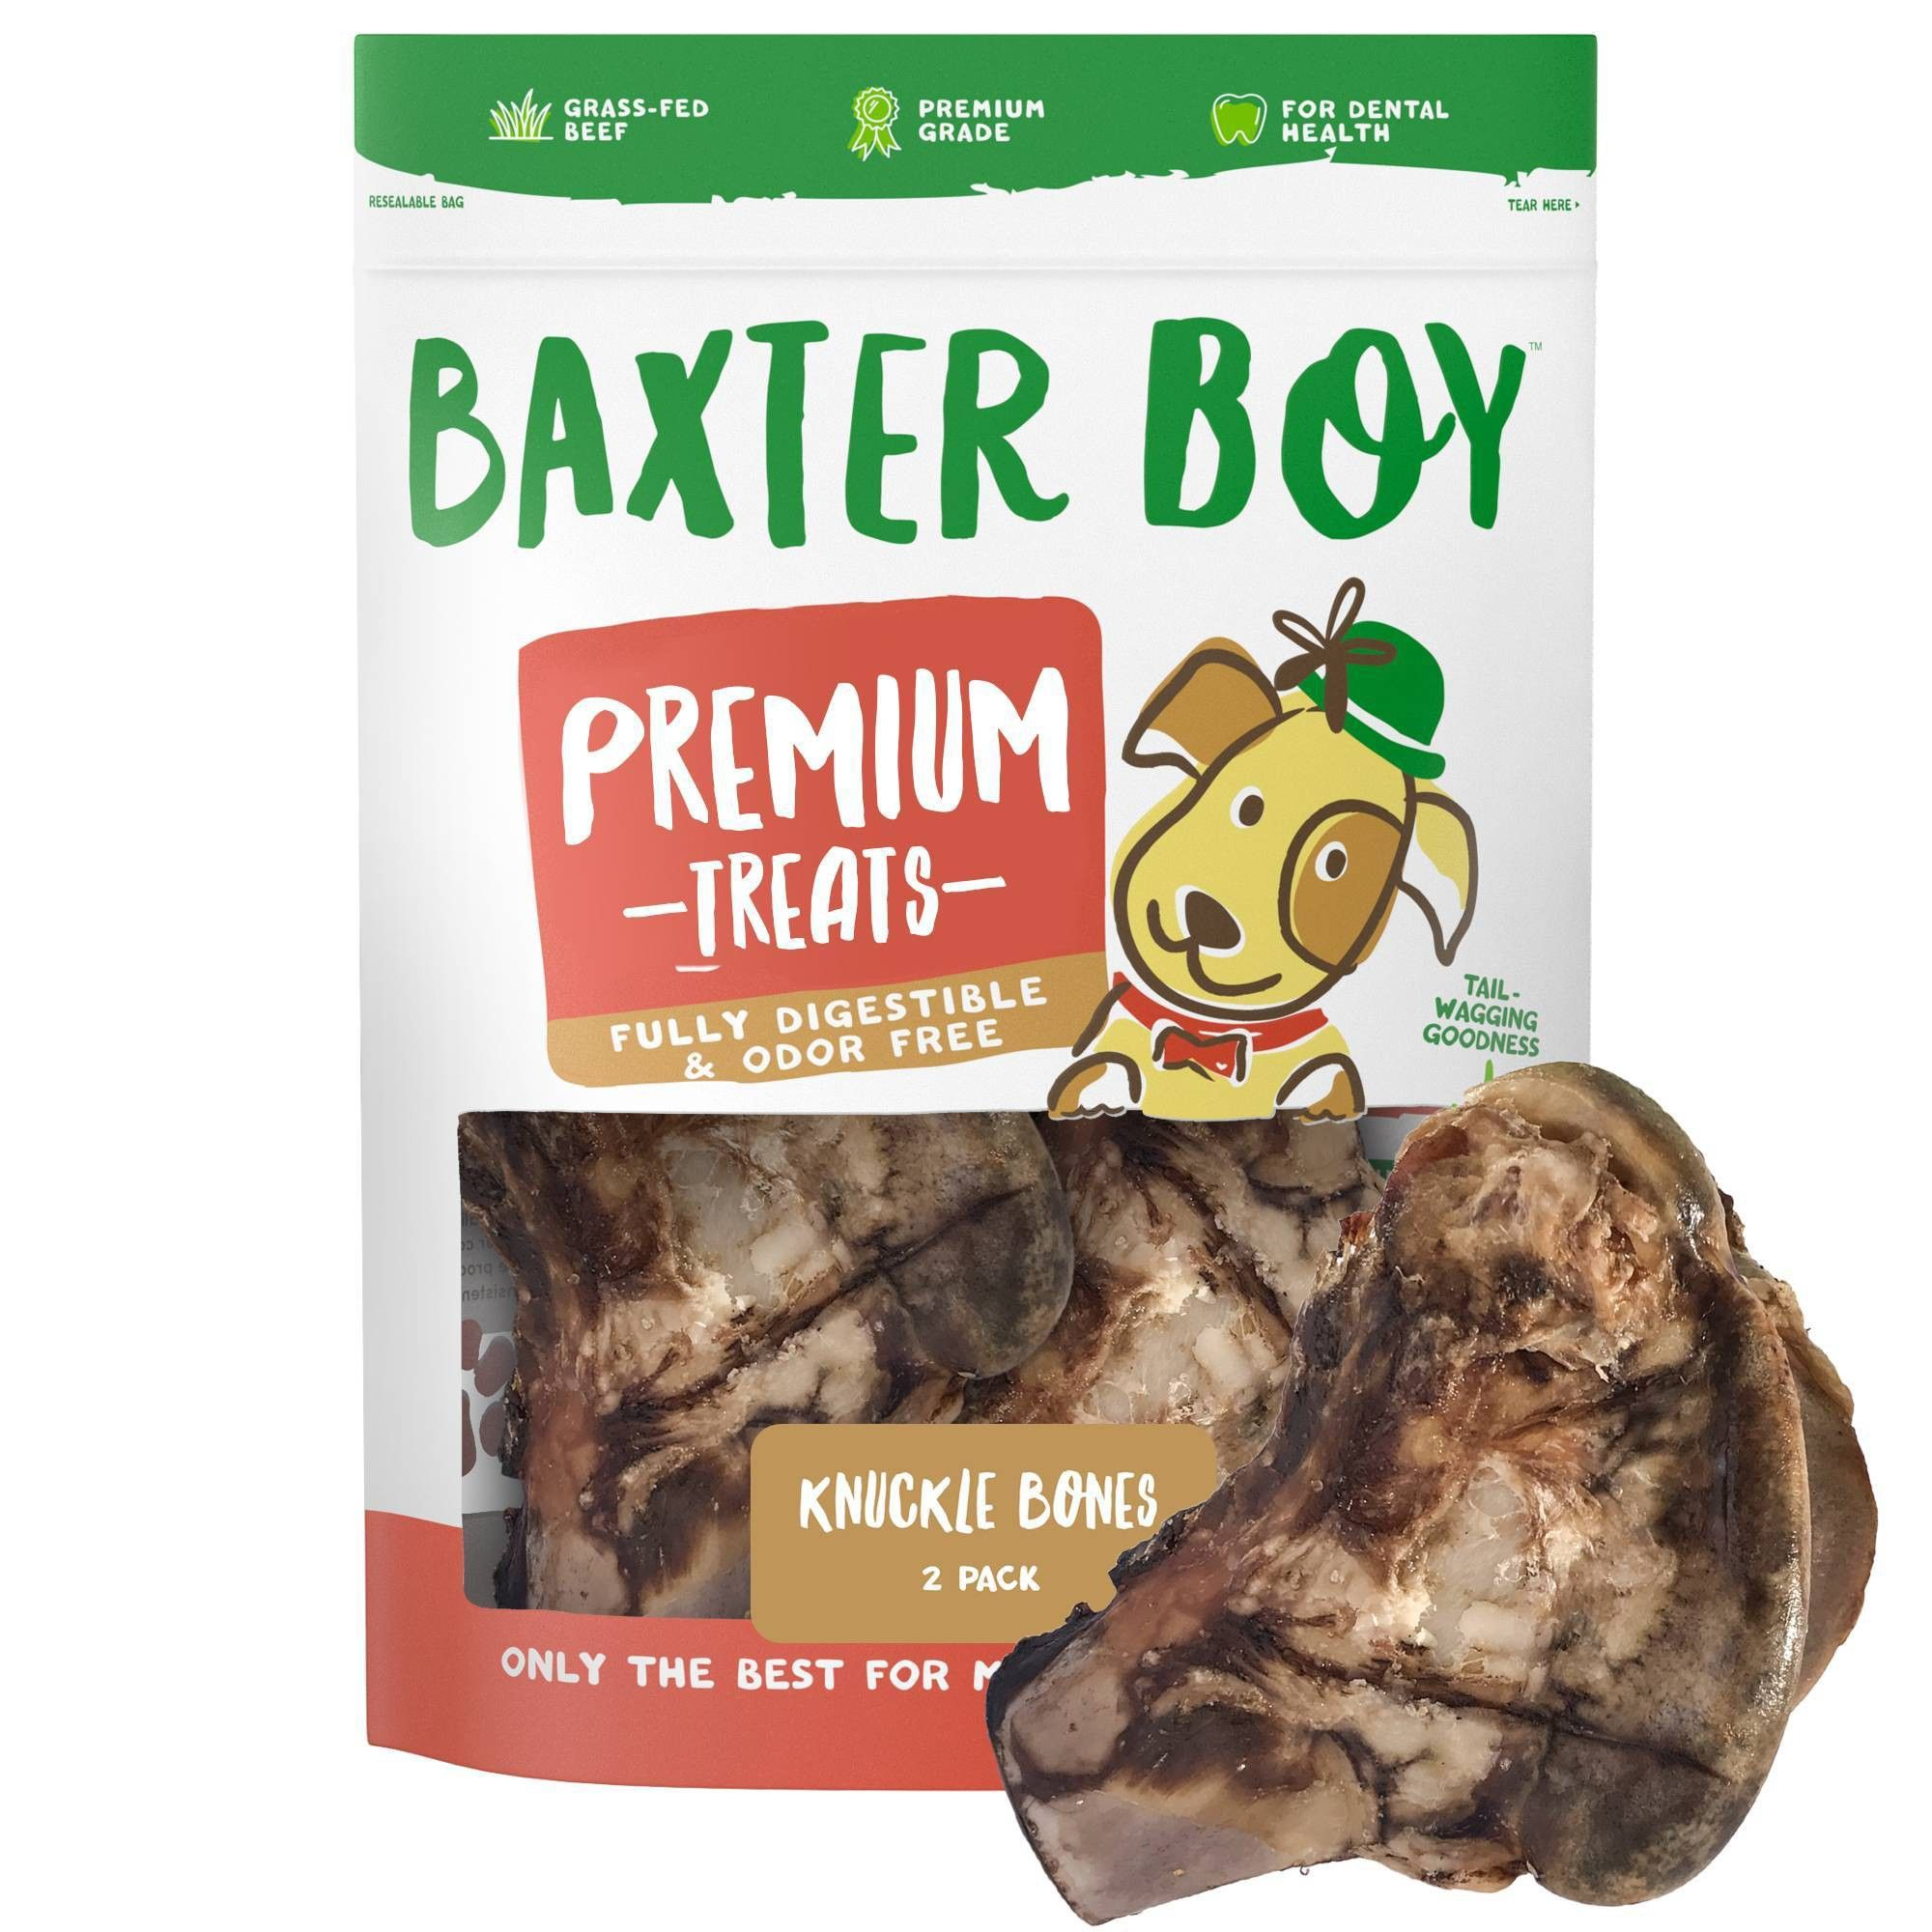 Baxter Boy Knuckle Bone Dog Treats 2pk Dog Treats Treats Dog